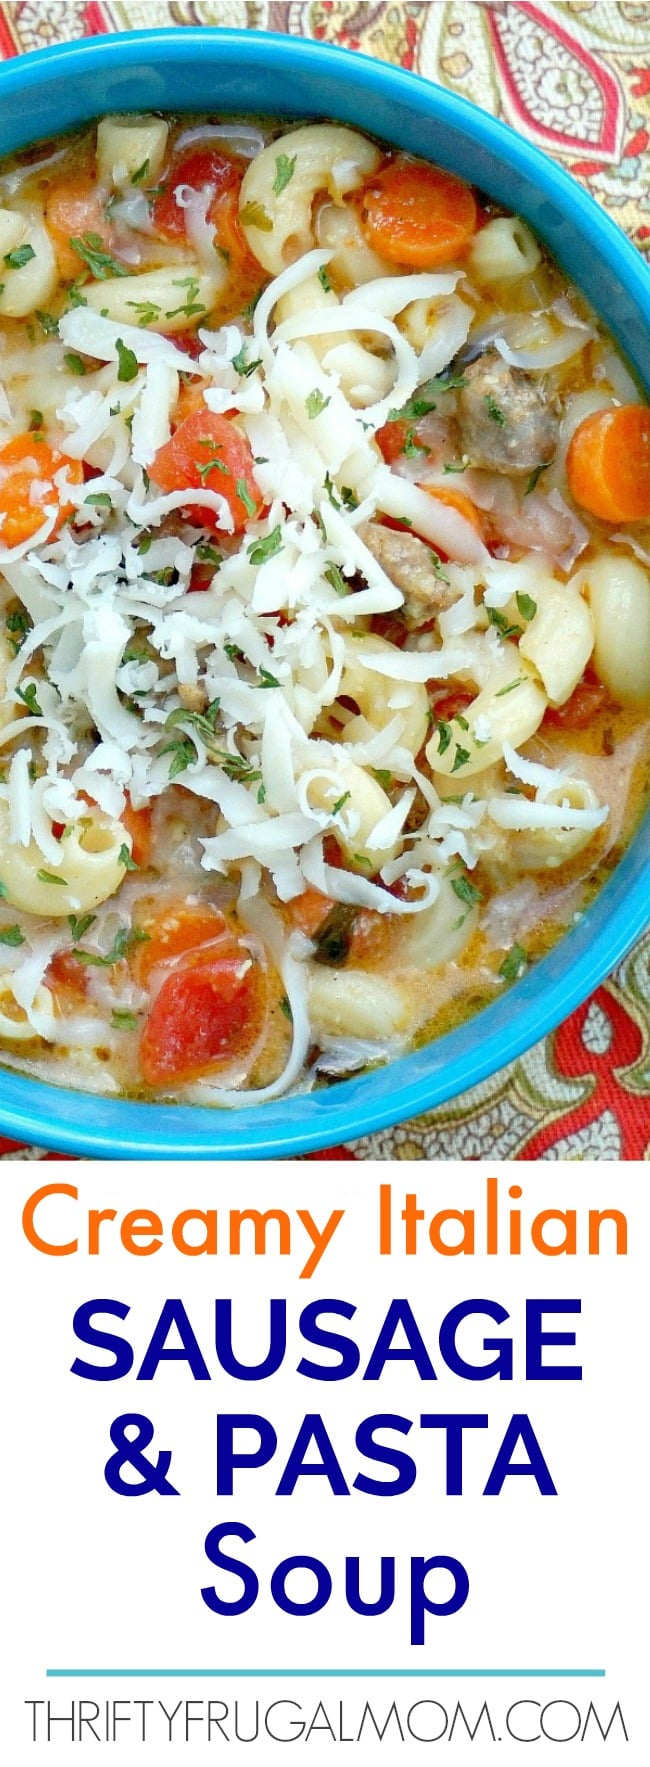 This Creamy Italian Sausage and Pasta Soup is absolutely amazing!  It's loaded with flavor and so hearty and delicious.  The perfect family friendly meal!